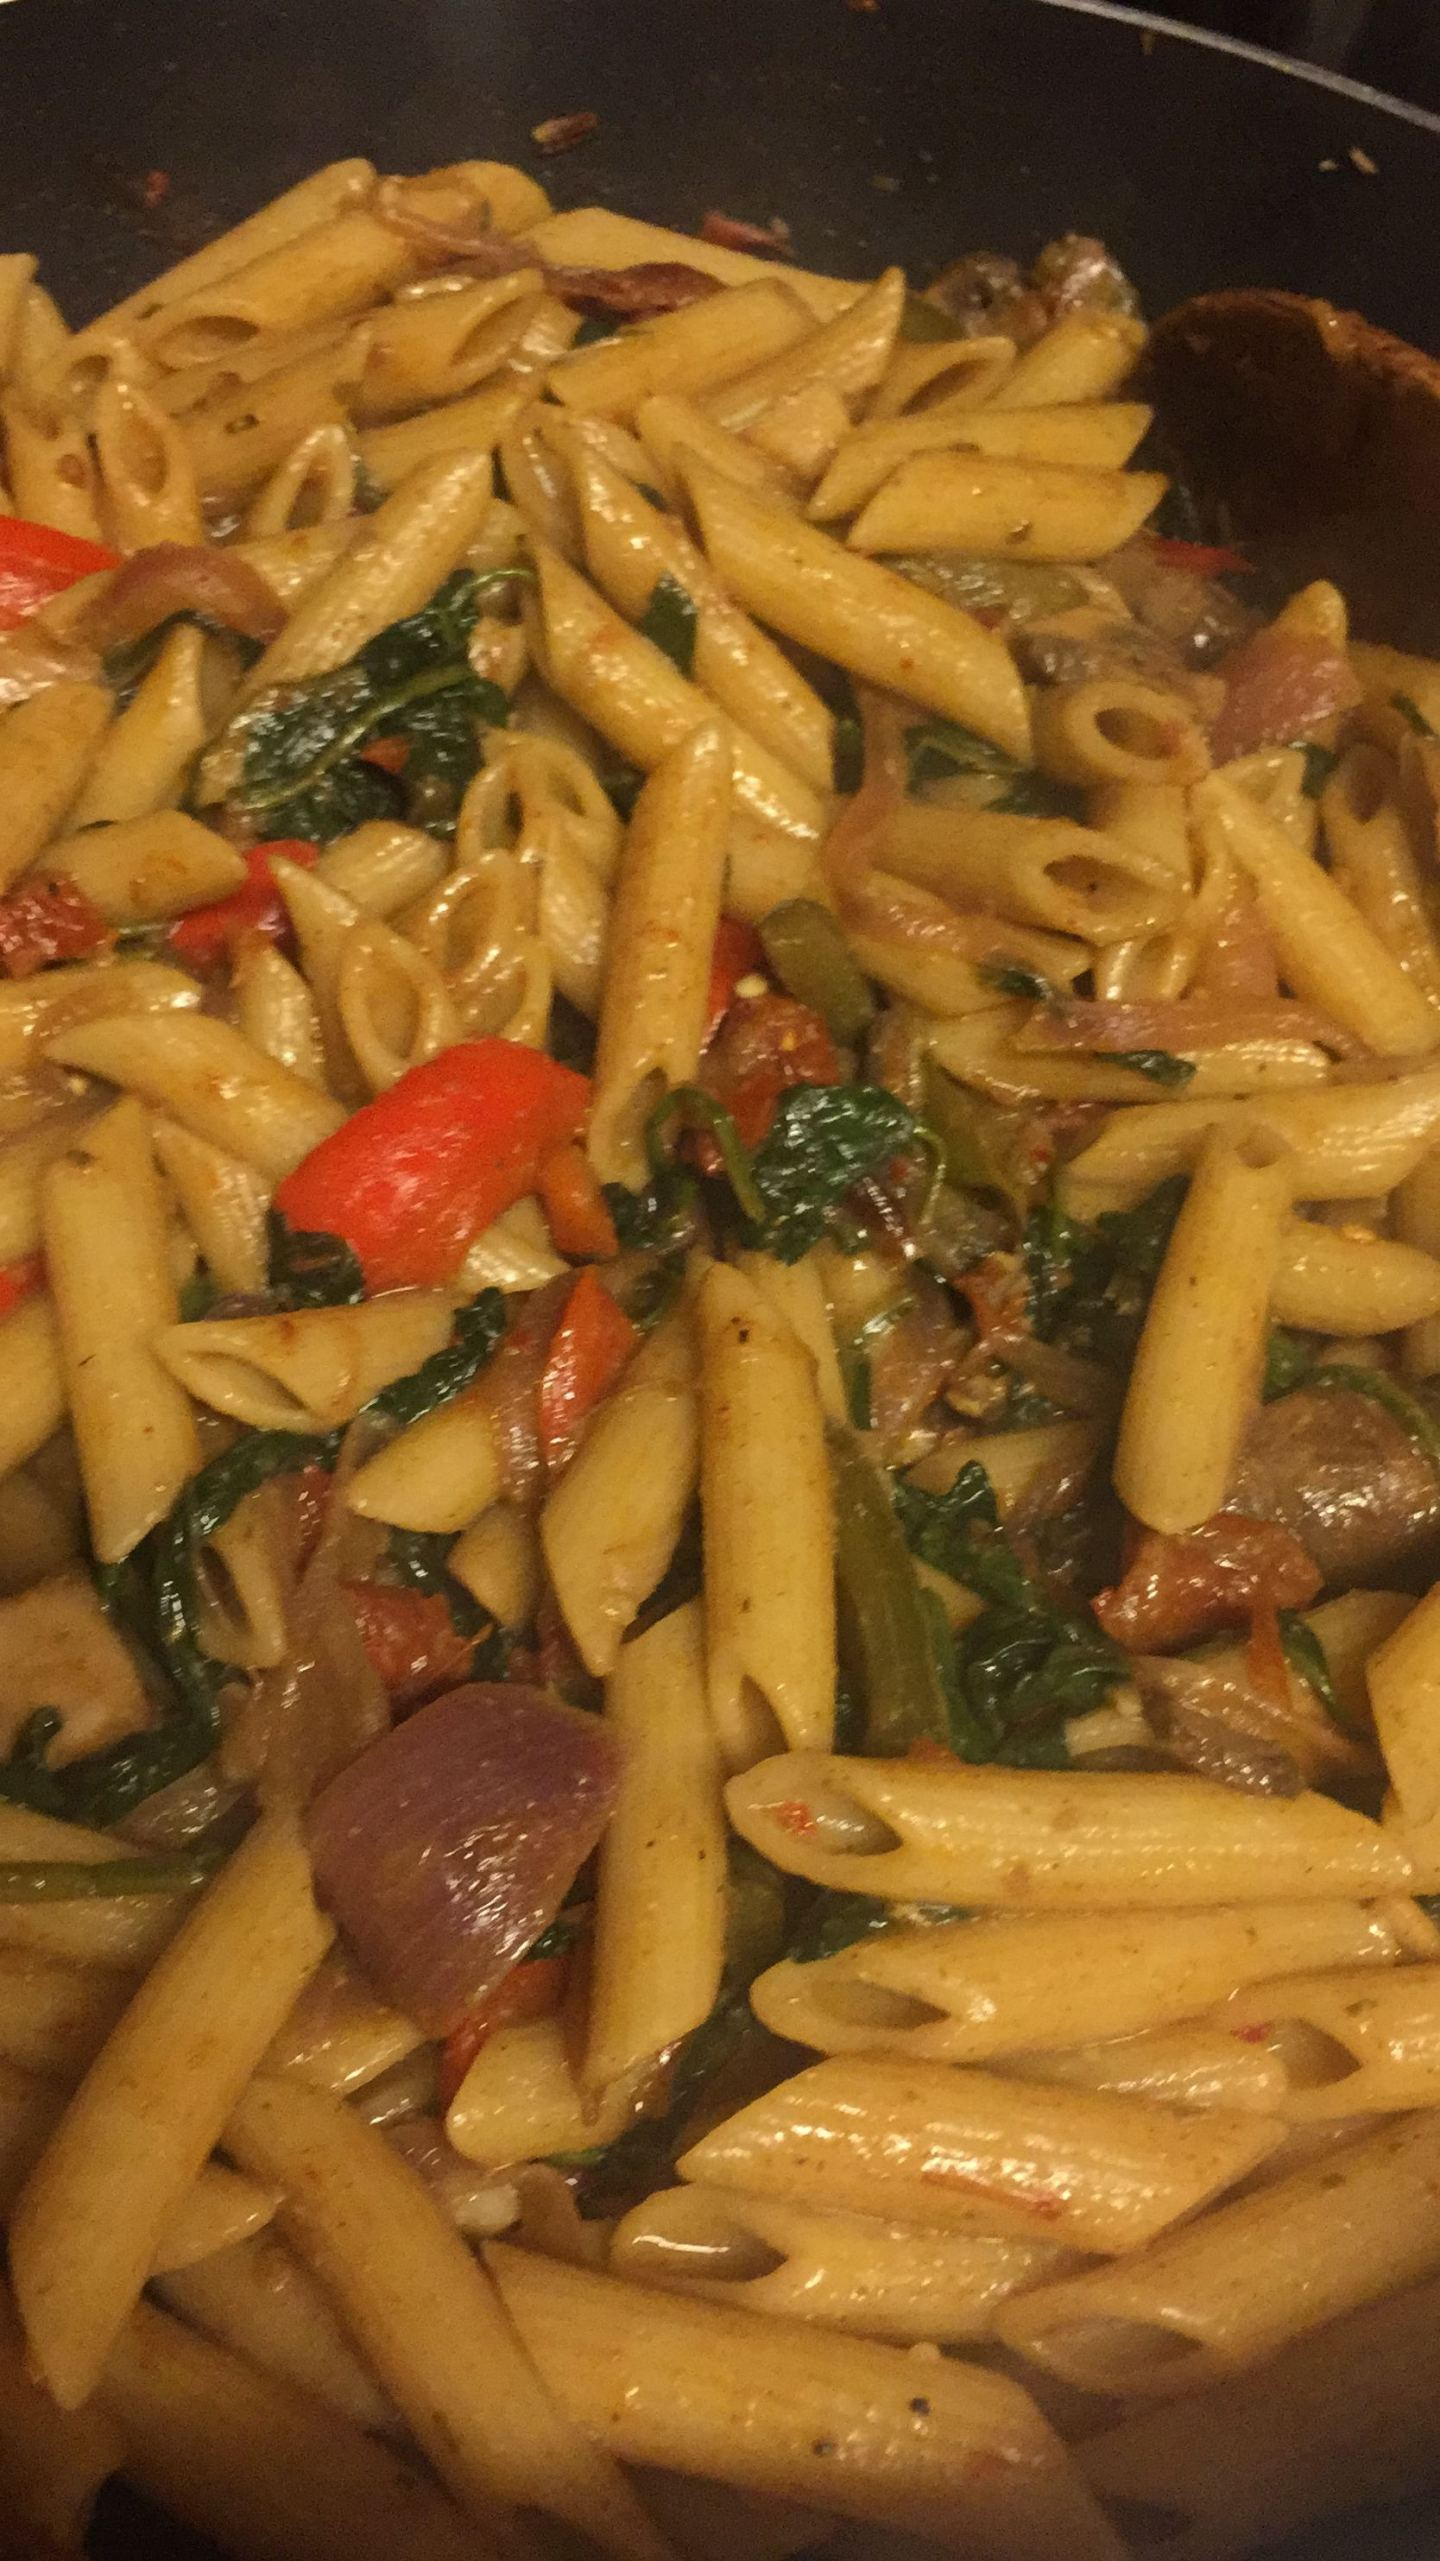 vegan jerk pasta - How Going Vegan Changed My Life - YesIMadeMyDress